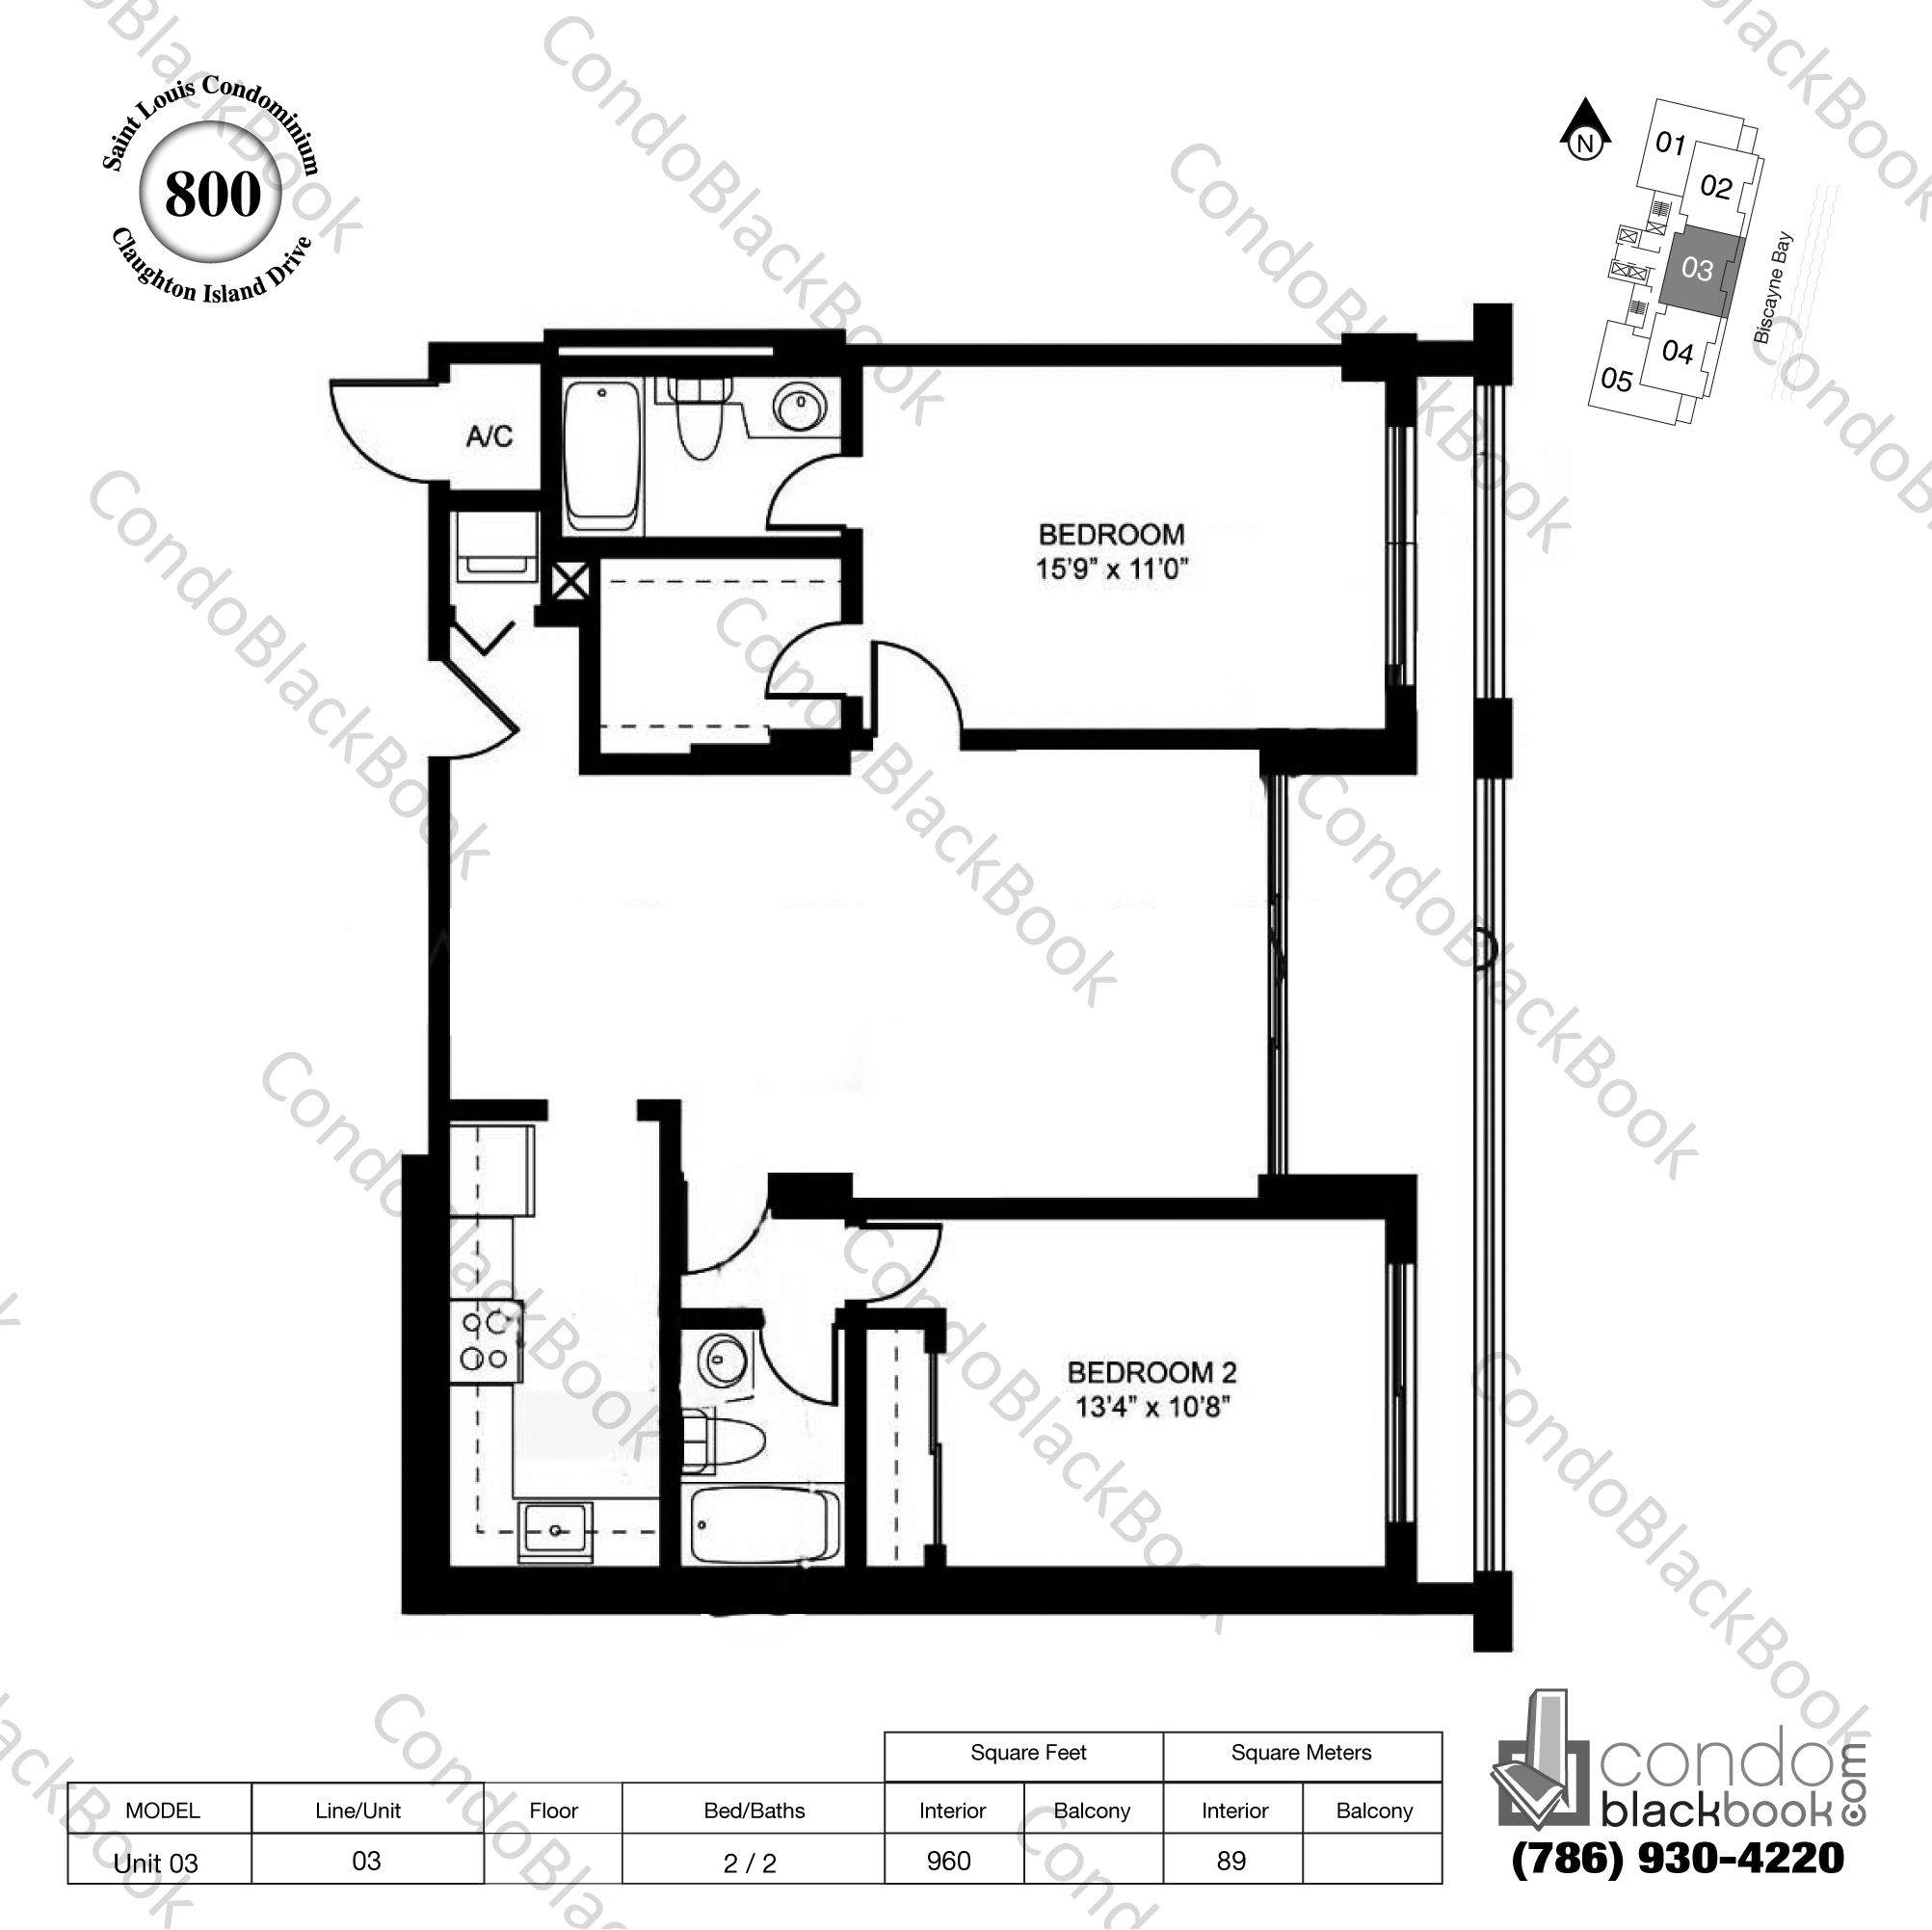 Floor plan for St Louis Condo Brickell Key Miami, model Unit 03, line 03, 2 / 2 bedrooms, 960 sq ft